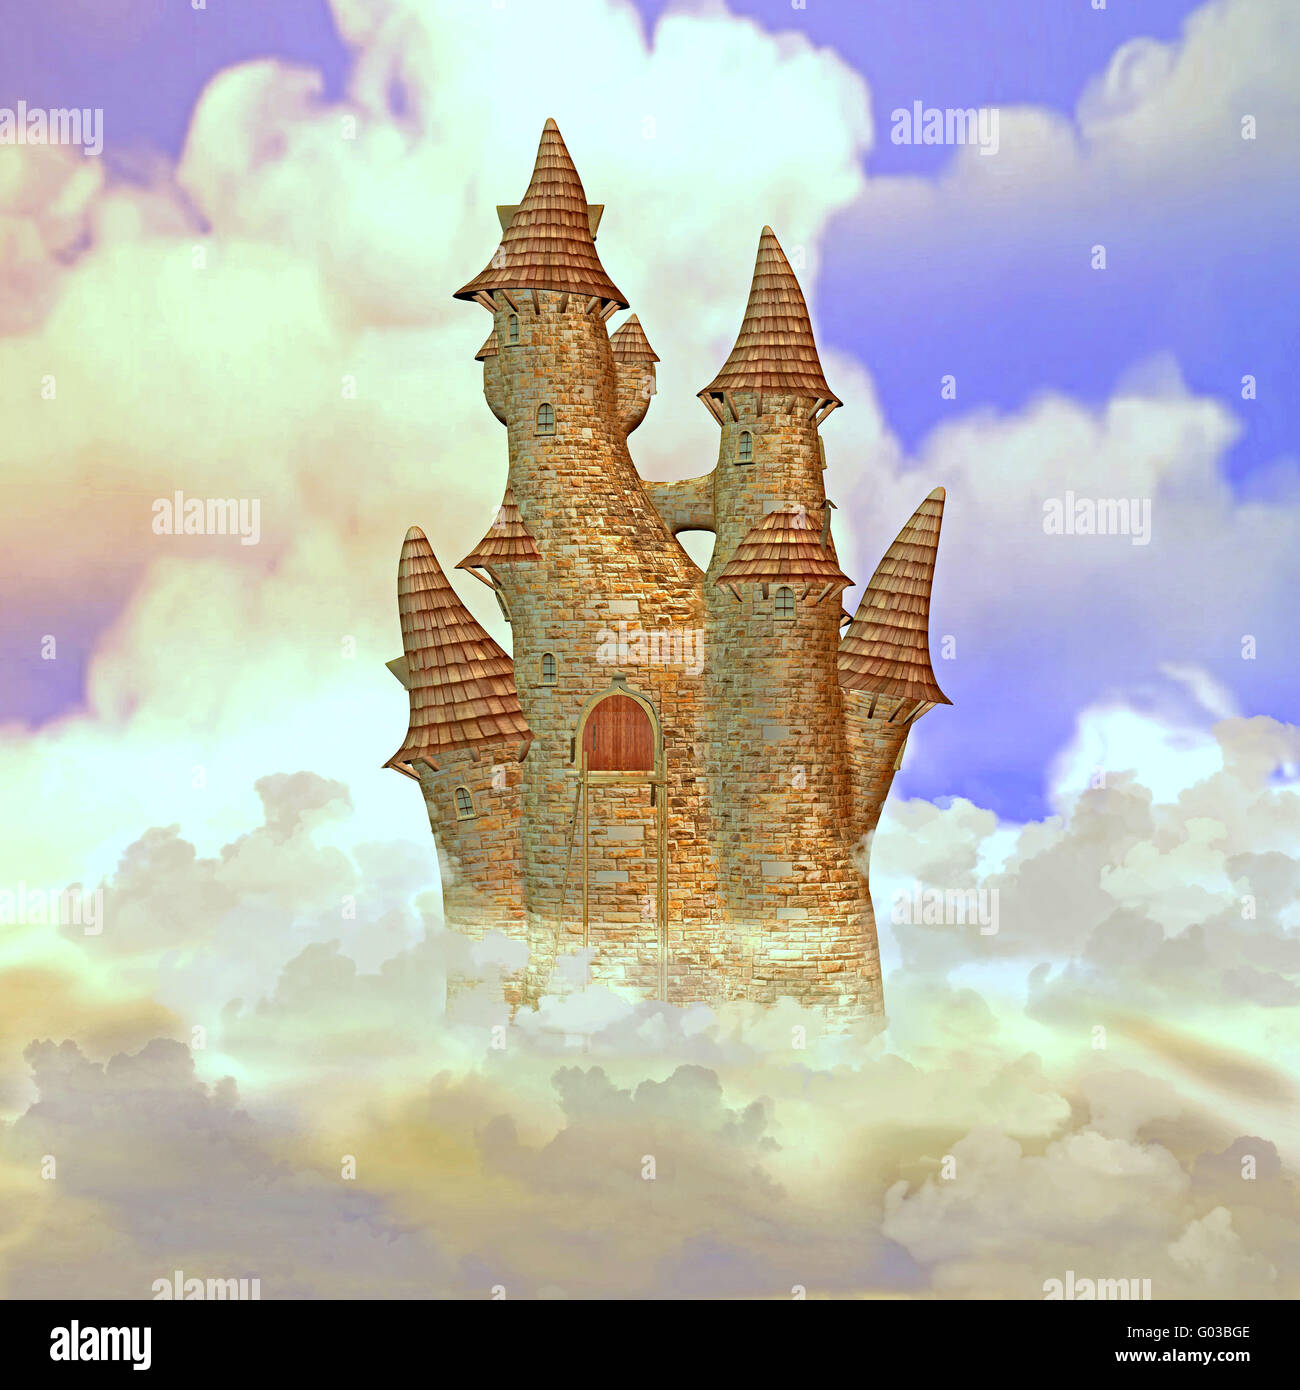 castle in the clouds - Stock Image